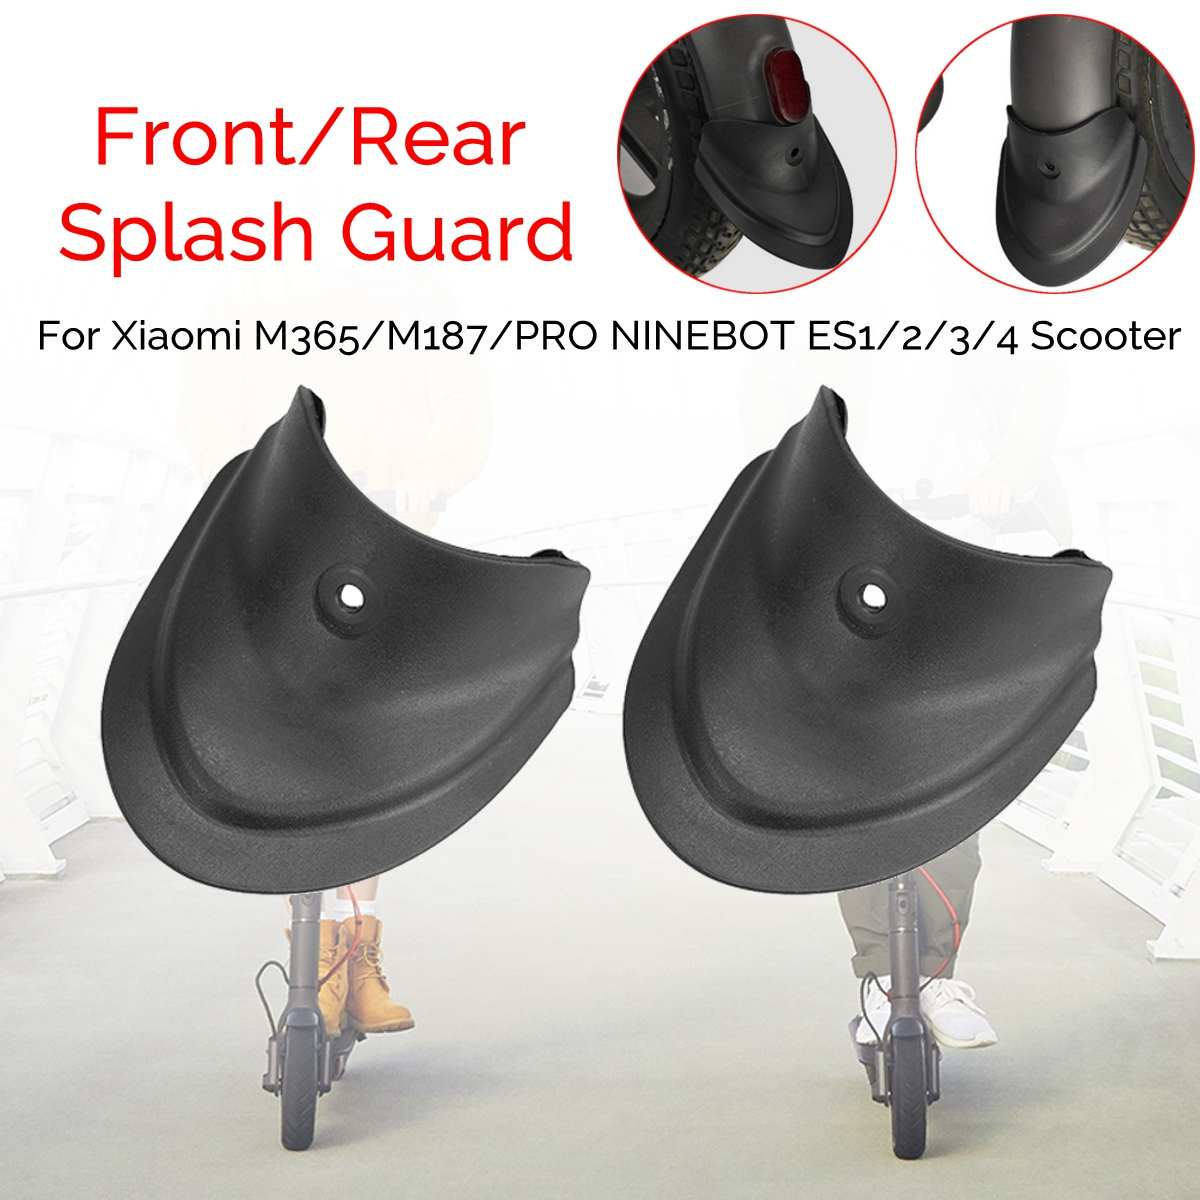 Splash Guards Modification Tuning Parts For Xiaomi M365/M187/PRO NINEBOT ES1/2/3/4 Electric Scooter